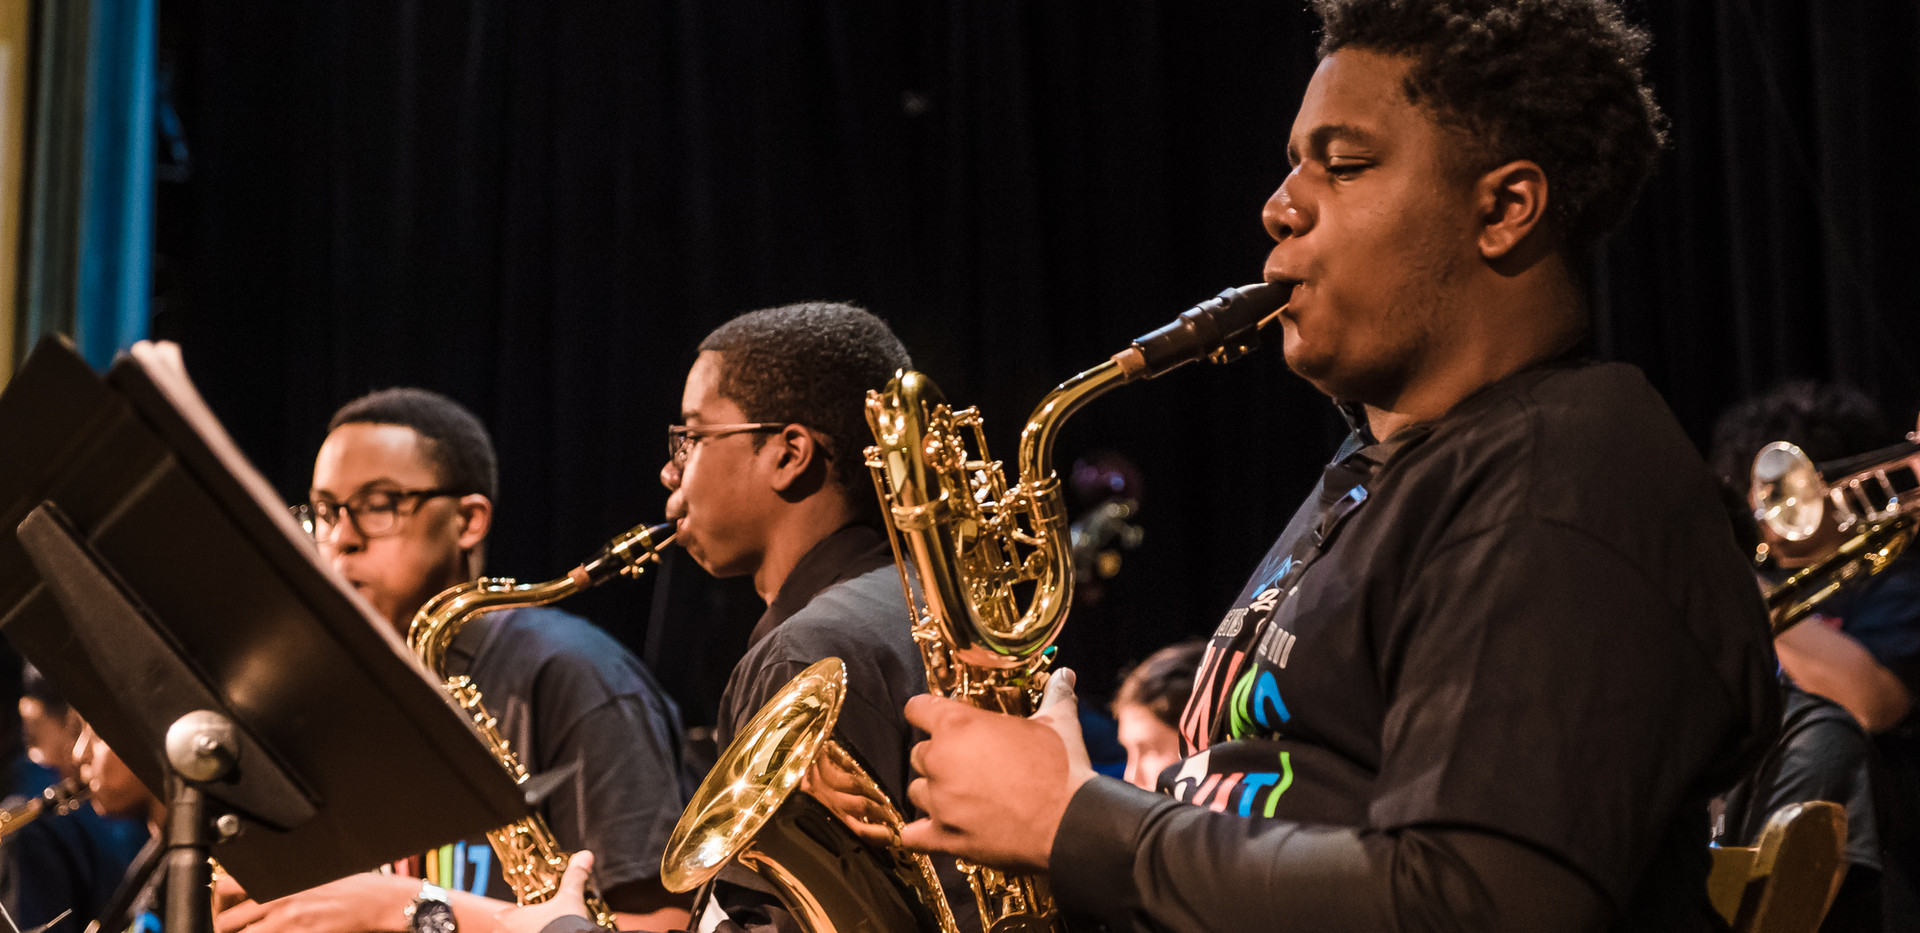 Taijee Shavers later performed on the baritone saxophone during the Jazz Big Band performance.